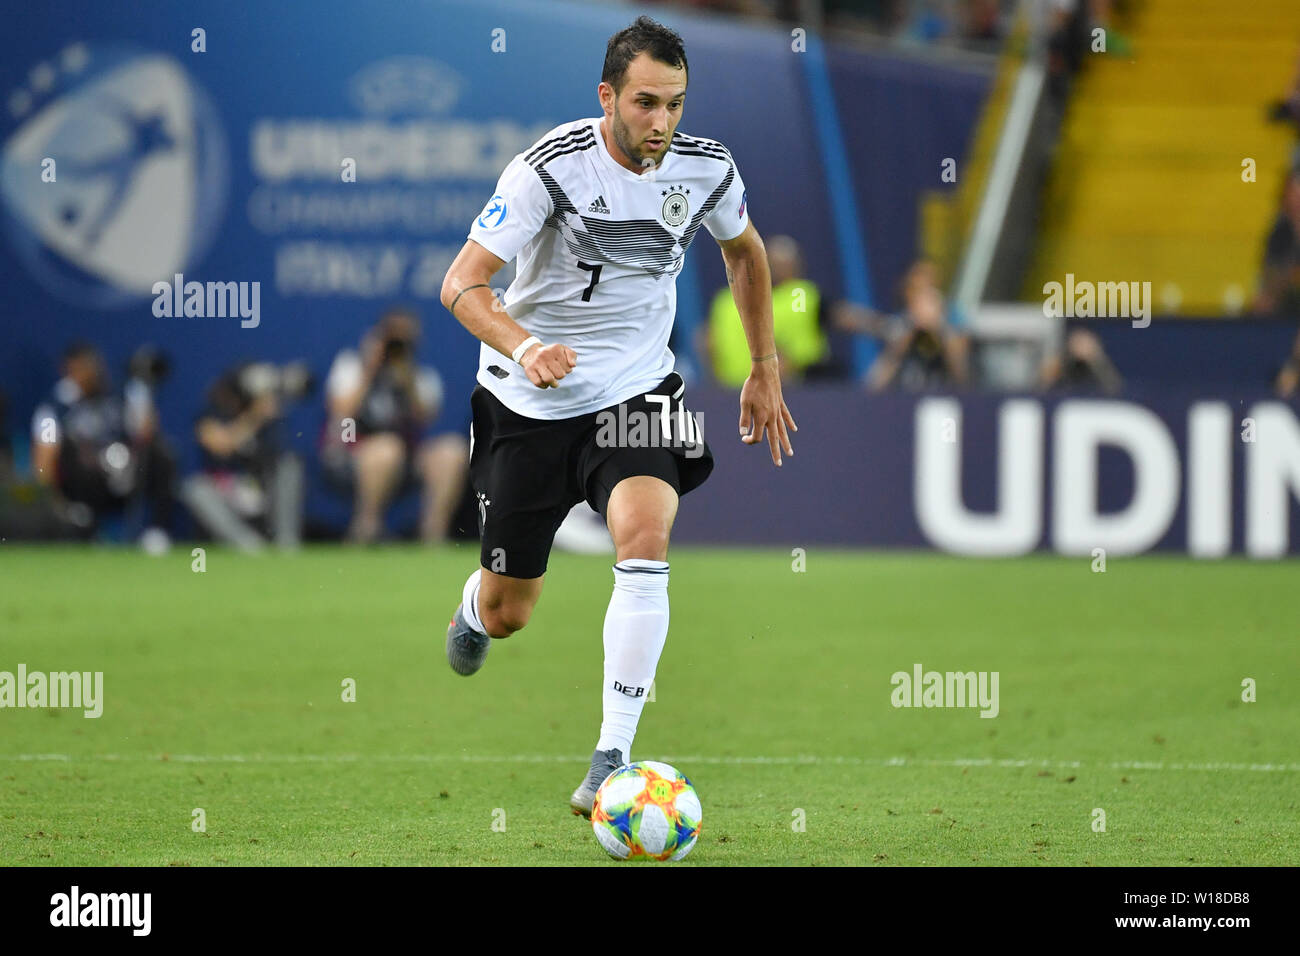 Udine, Italien. 30th June, 2019. Levin OEZTUNALI (GER), Action, Single Action, Frame, Cut Out, Full Body, Whole Figure. Spain (ESP) - Germany (GER) 2-1, at 30.06.2019 Stadio Friuli Udine. Football U-21, FINALE UEFA Under21 European Championship in Italy/SanMarino from 16.-30.06.2019. | Usage worldwide Credit: dpa/Alamy Live News - Stock Image